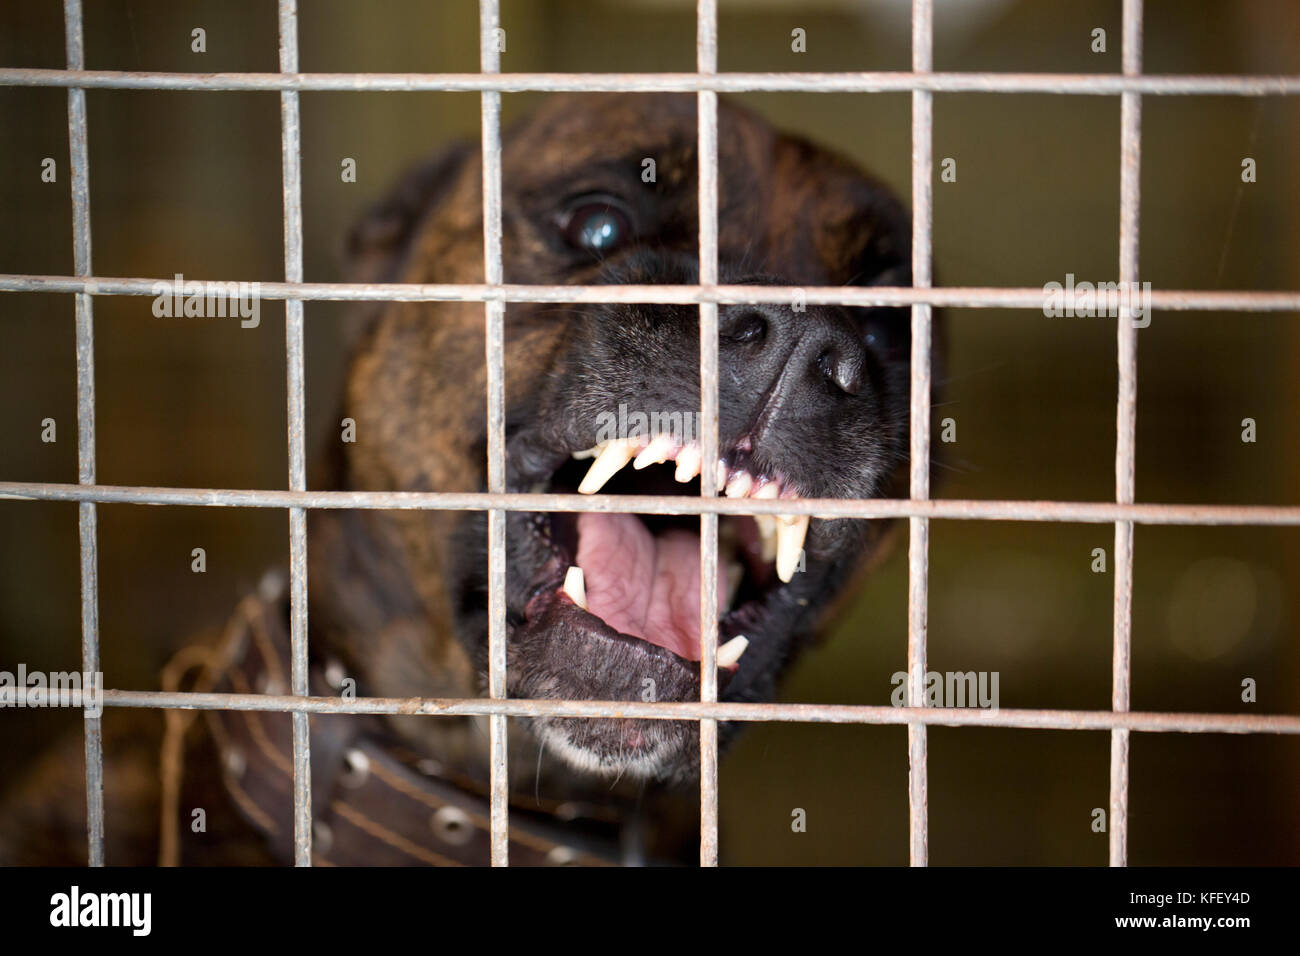 An angry dog seats in a cage and barks - Stock Image